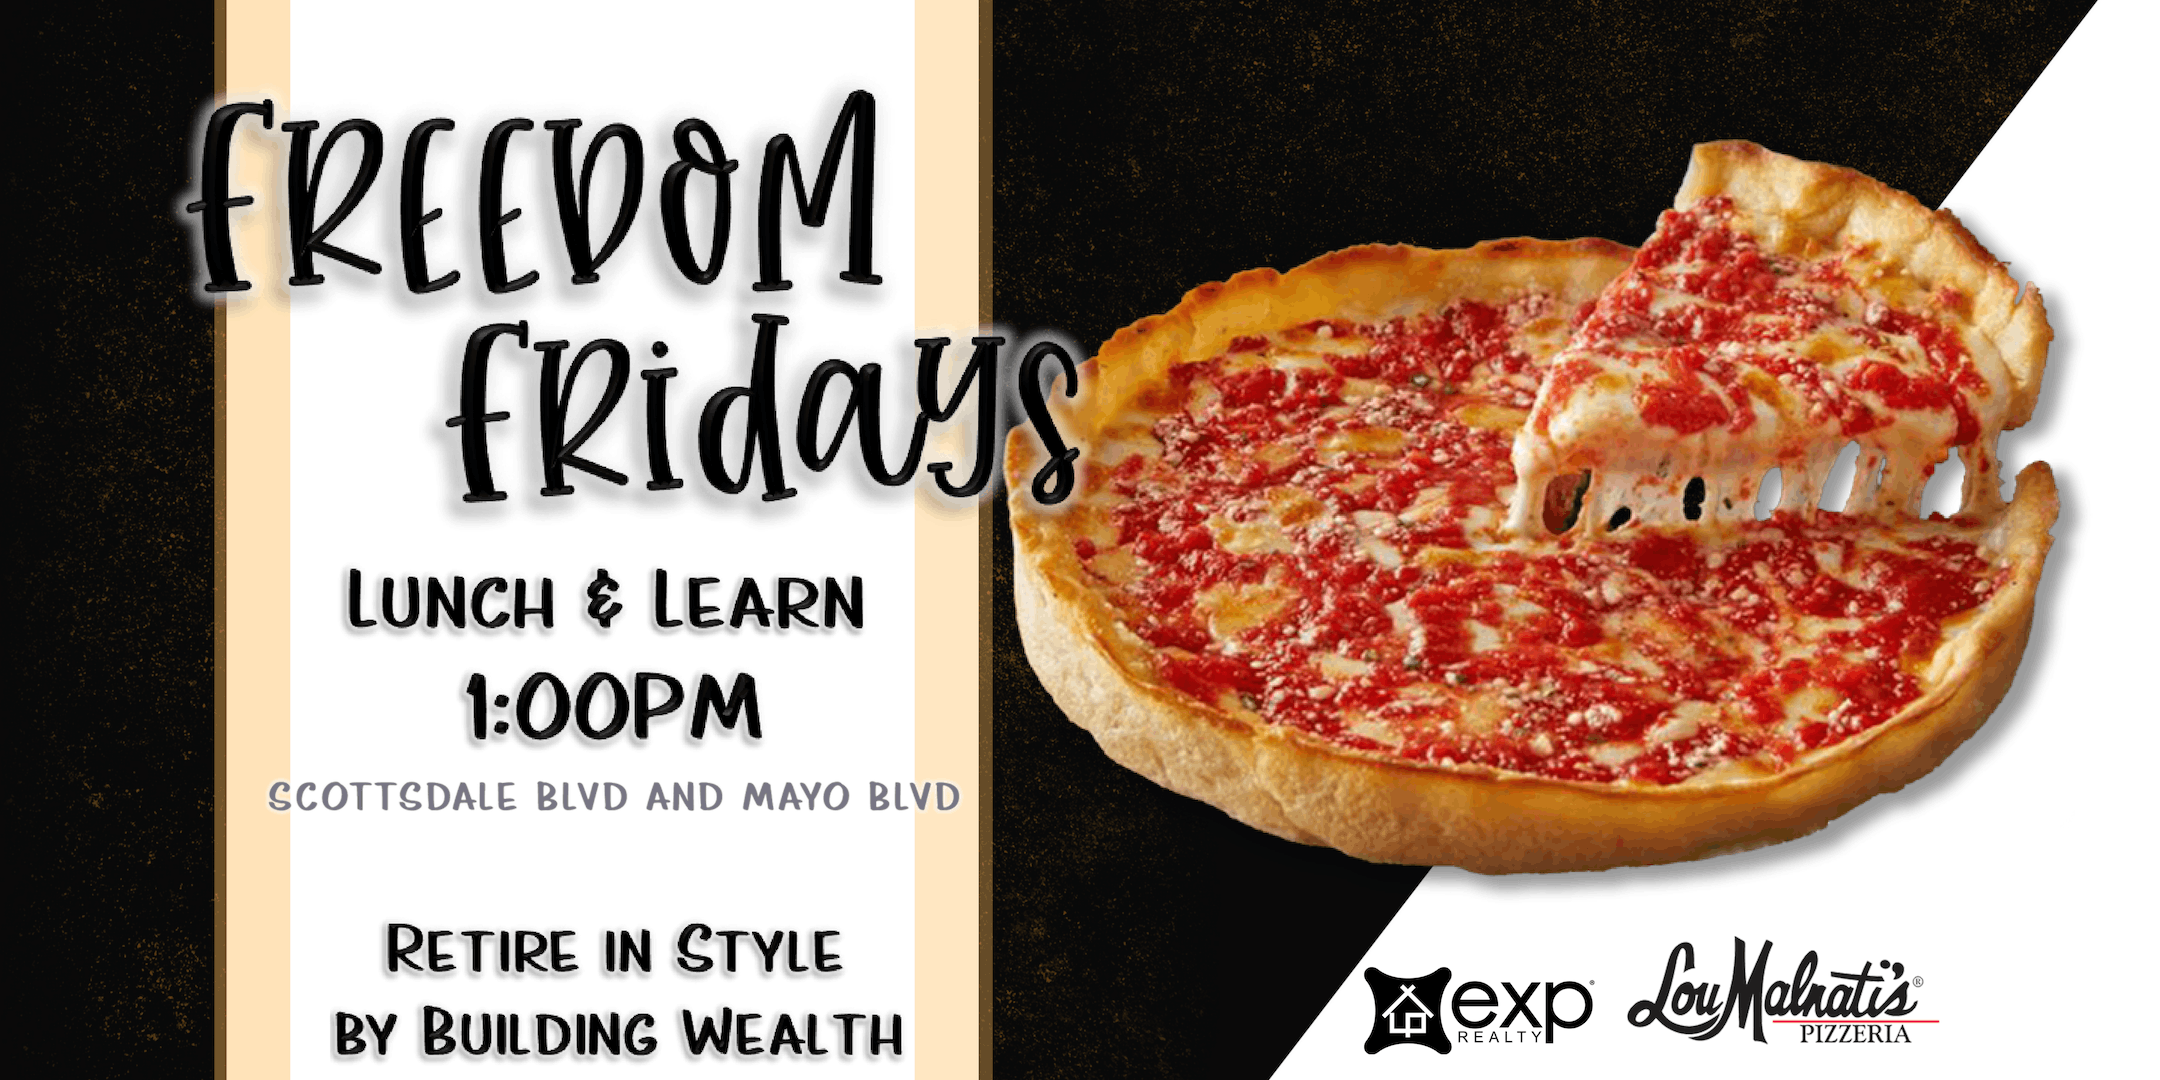 Freedom Friday - Lunch & Learn